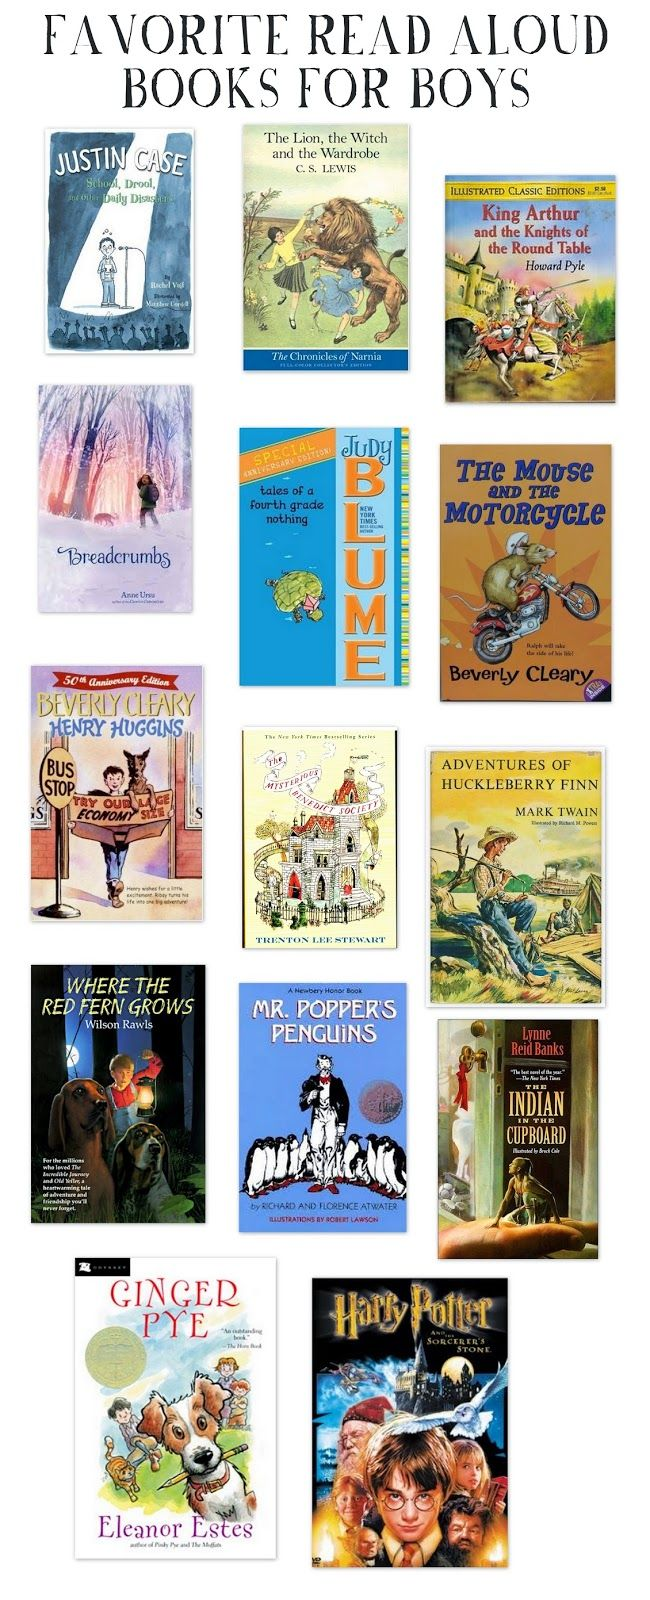 My Favorite Books to Read Aloud to Boys